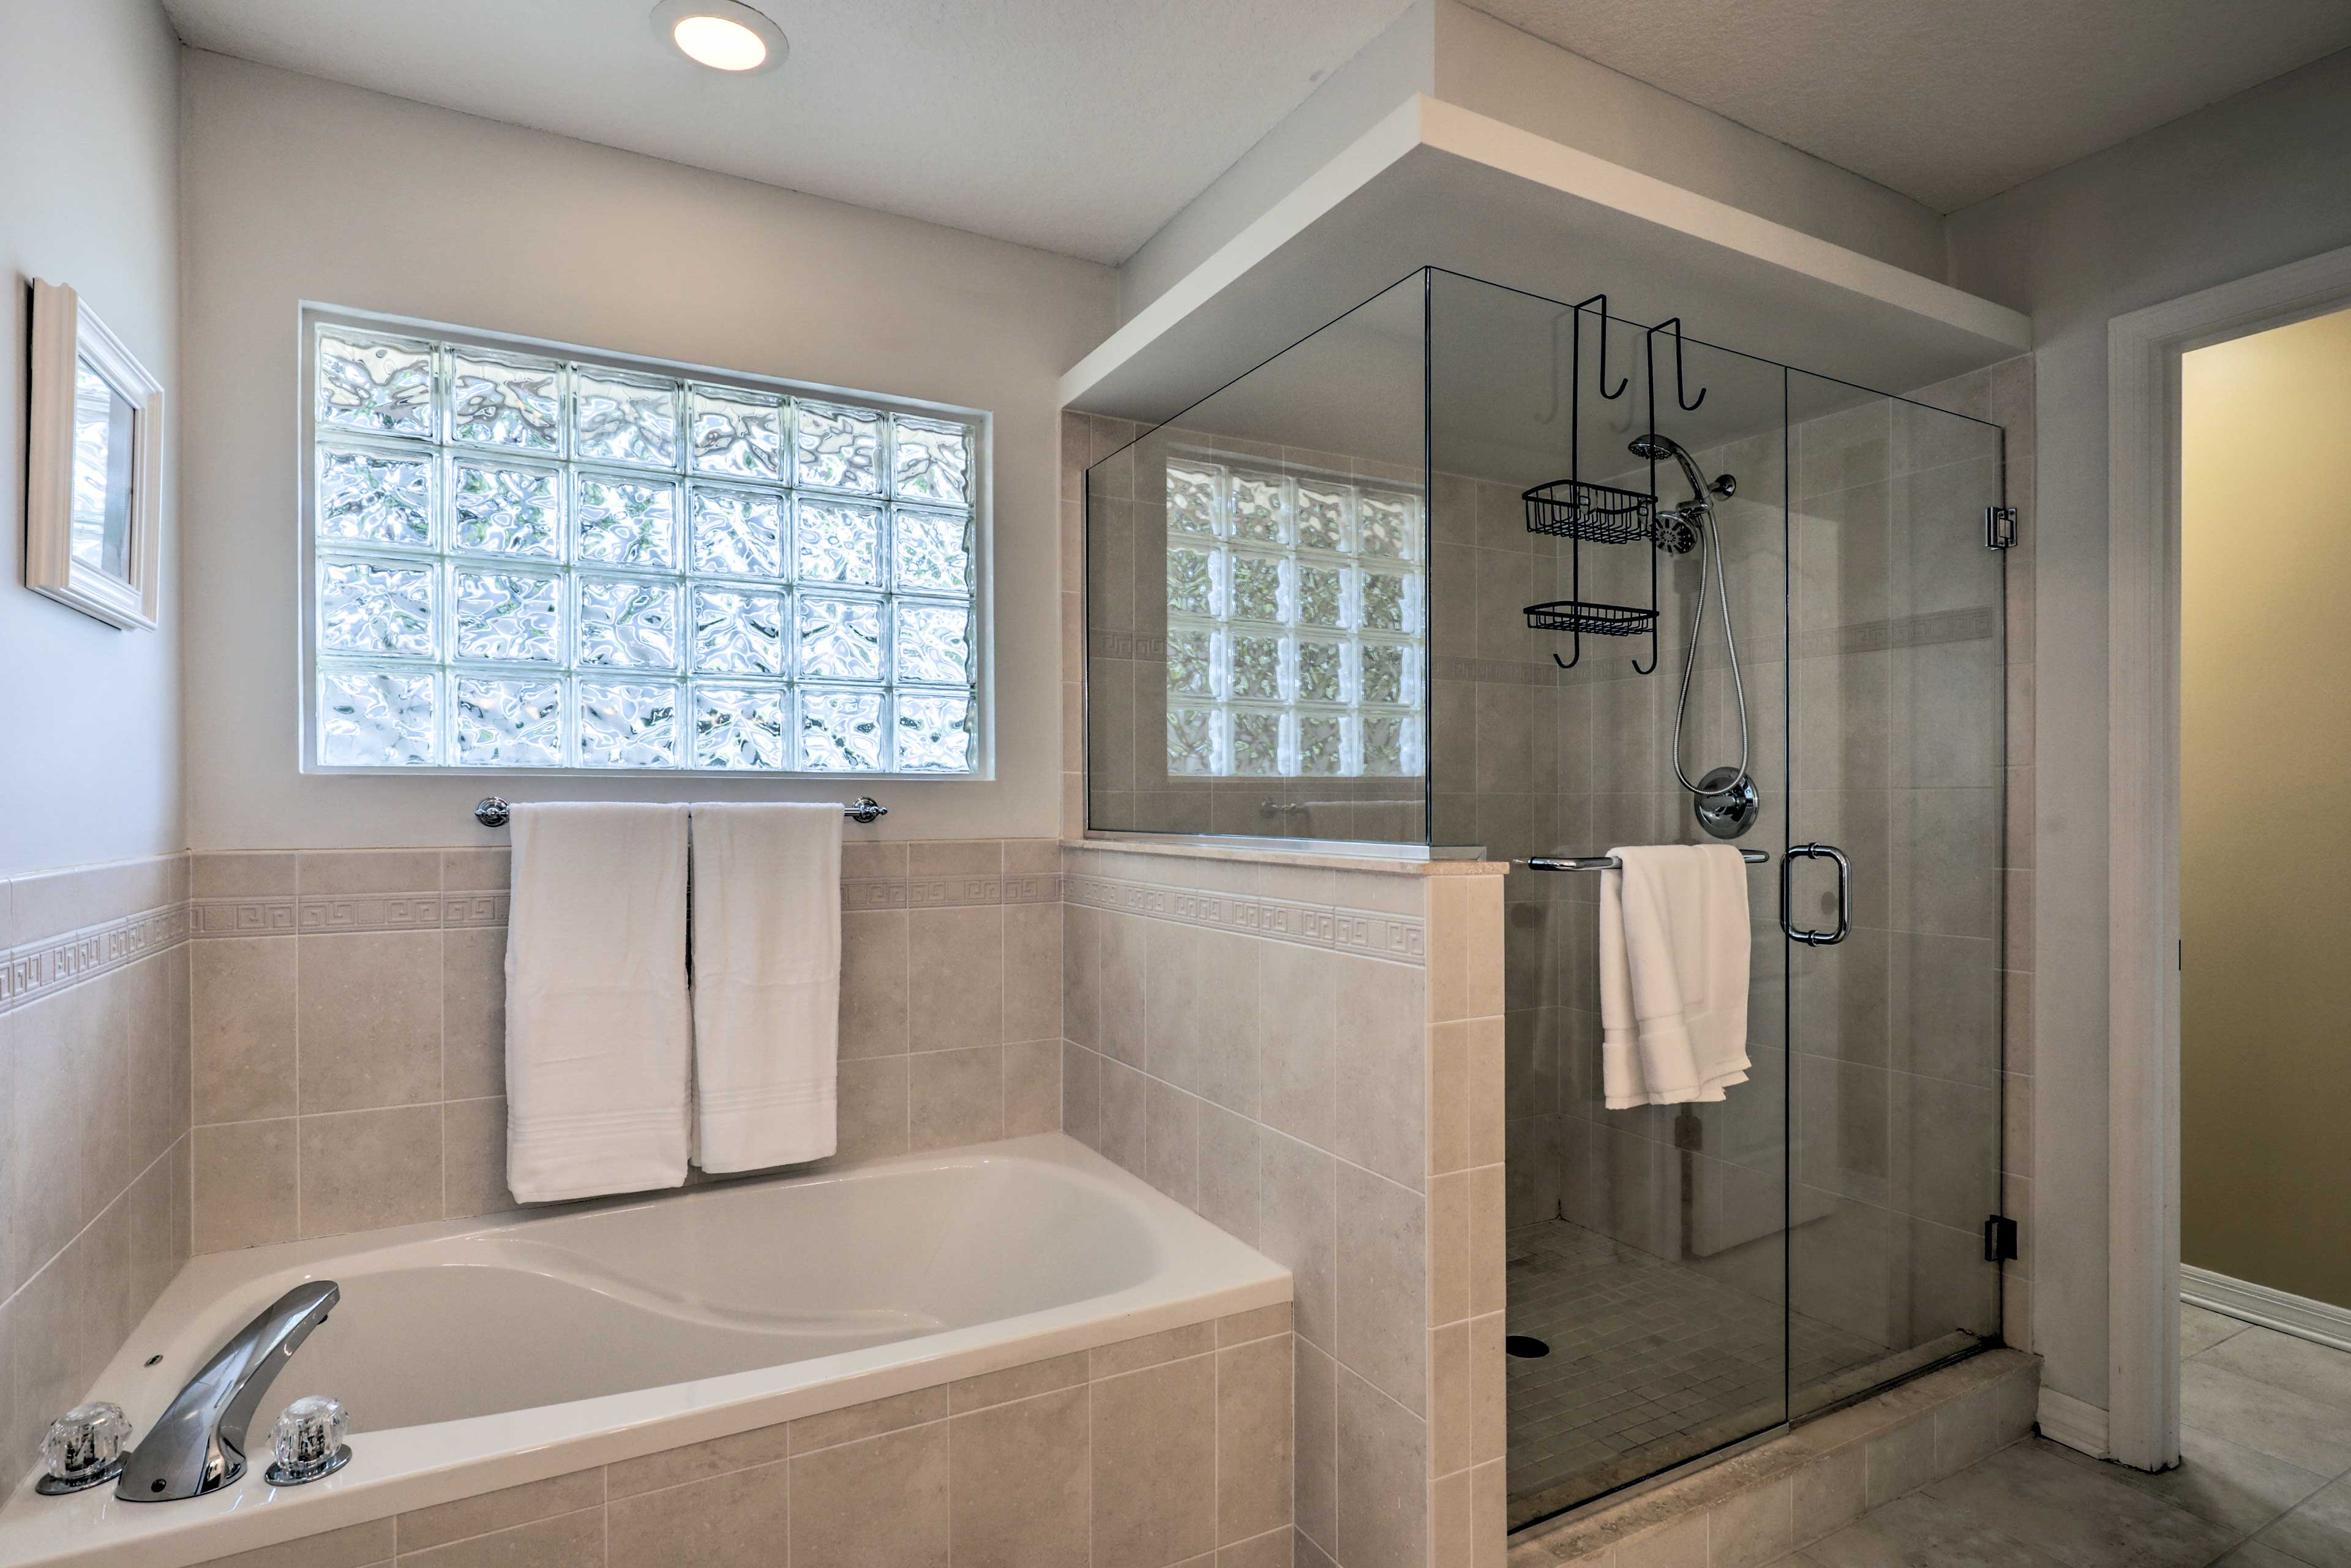 Rinse off in the walk-in shower or soak in the large bathtub.